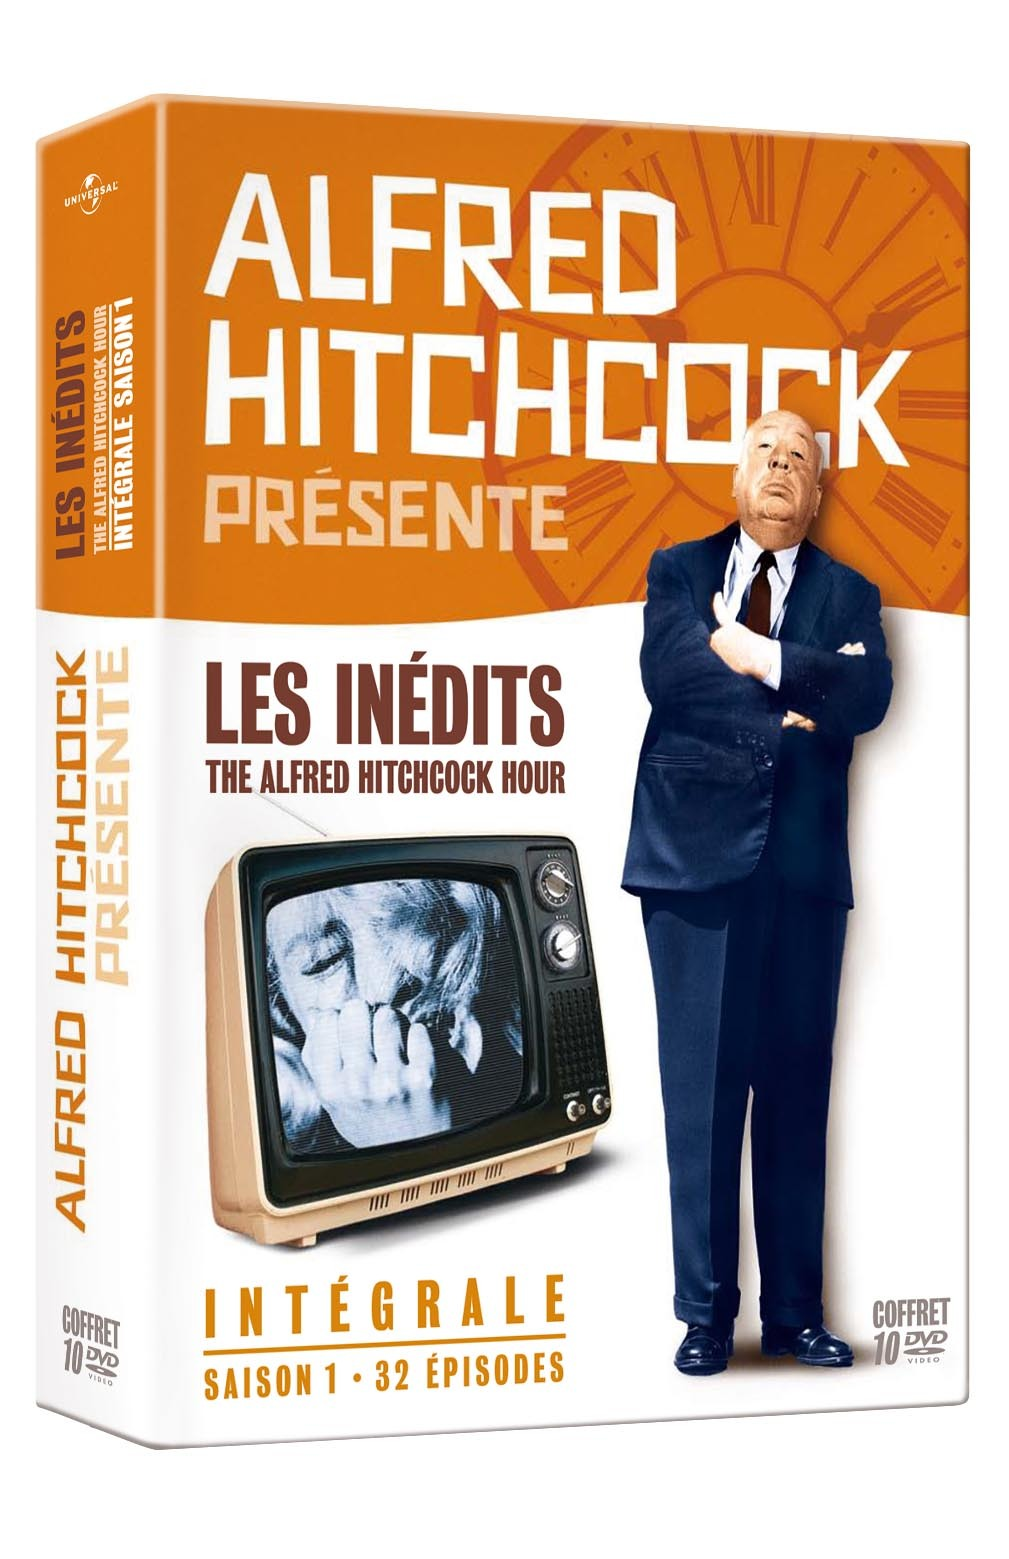 ALFRED HITCHCOCK LES INEDITS - INTEGRALE S1 - 10 DVD